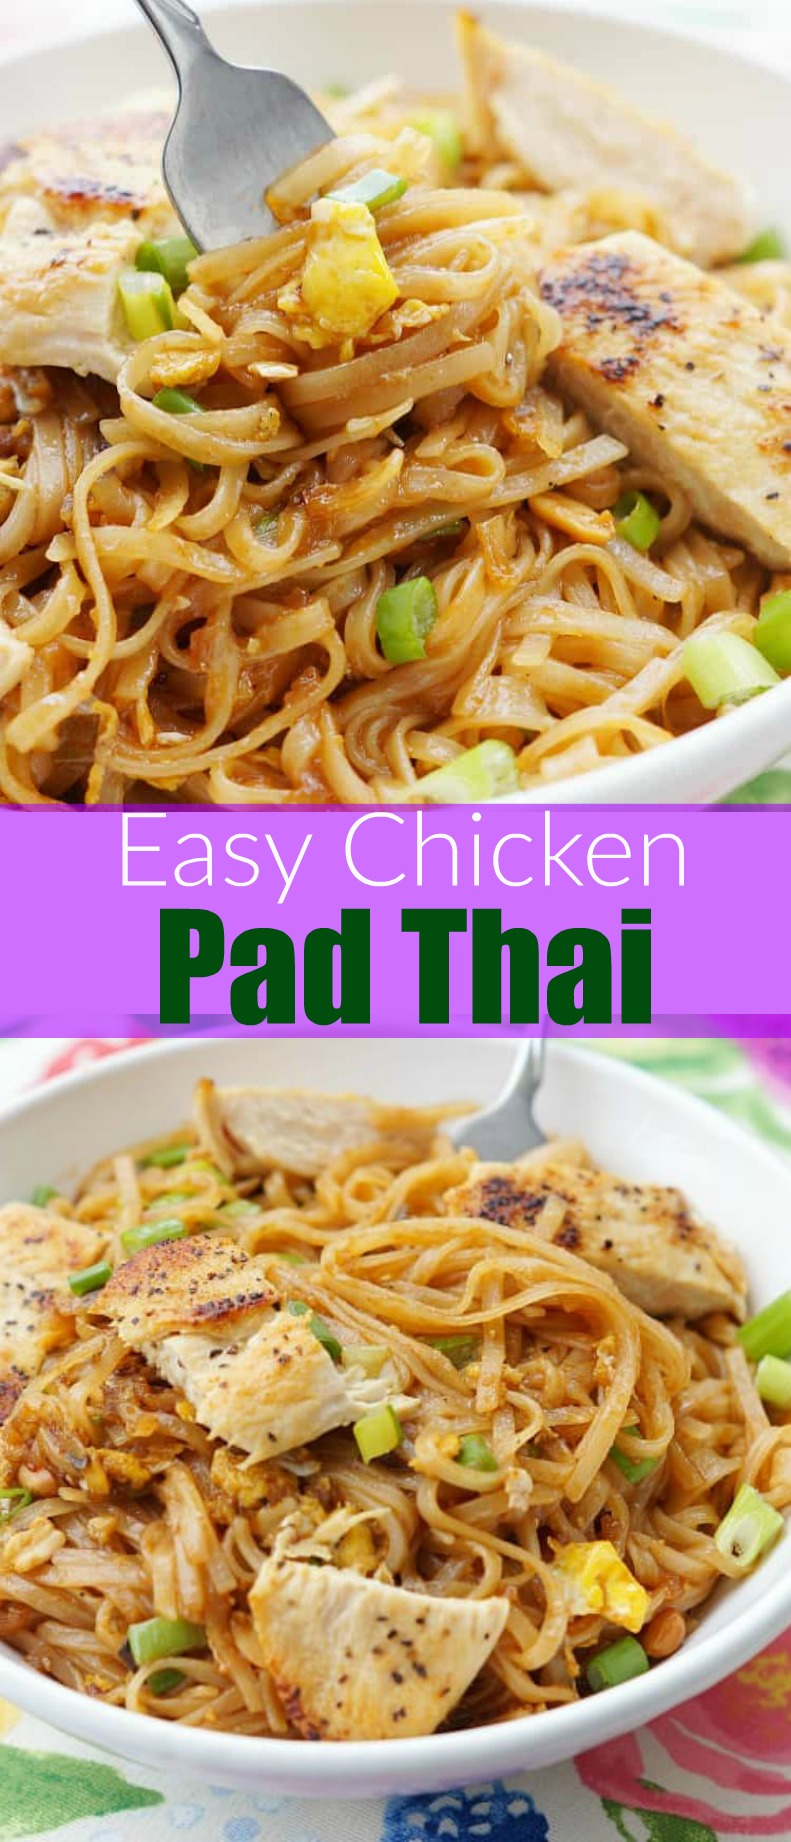 Easy Chicken Pad Thai. This healthy pad thai with chicken is so good and so easy! Chicken dinners that take less than 15 minutes are my favorite! T